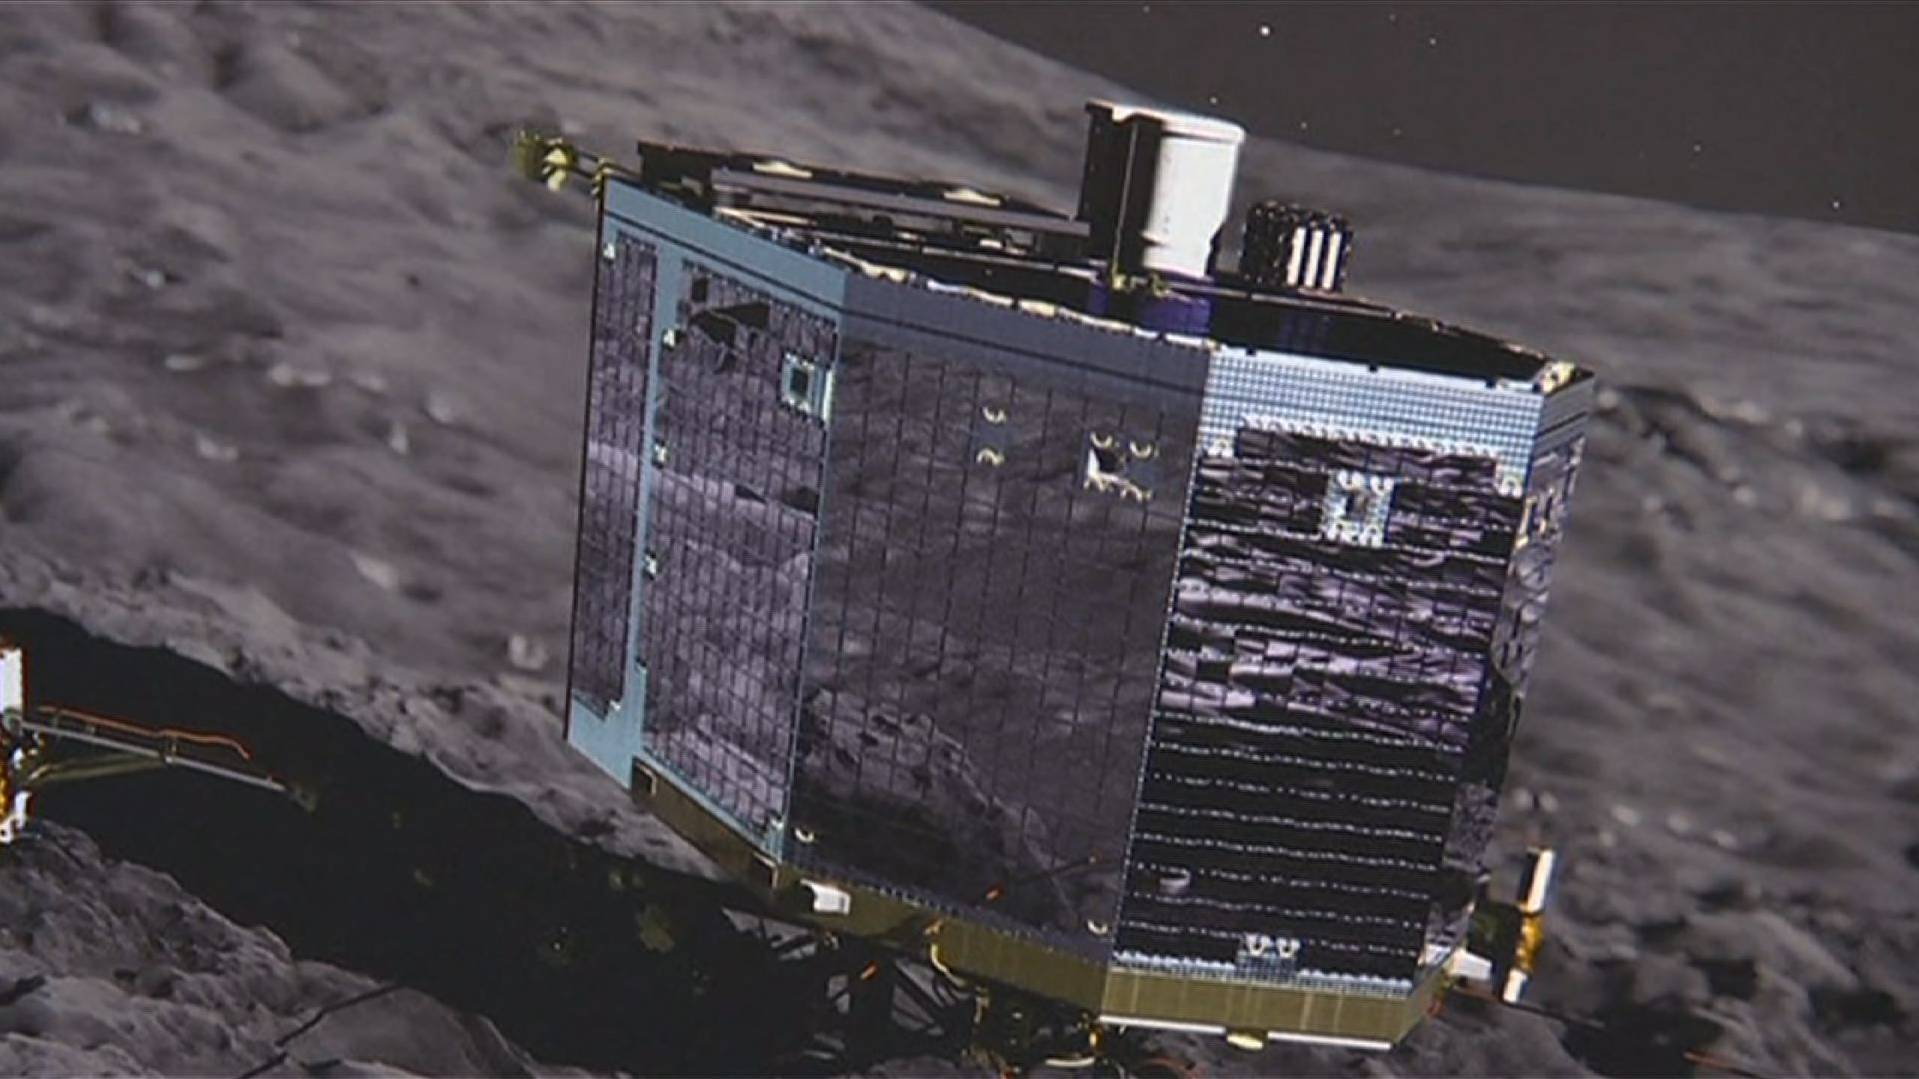 Spacecraft on Comet Wakes Up After 7 Months